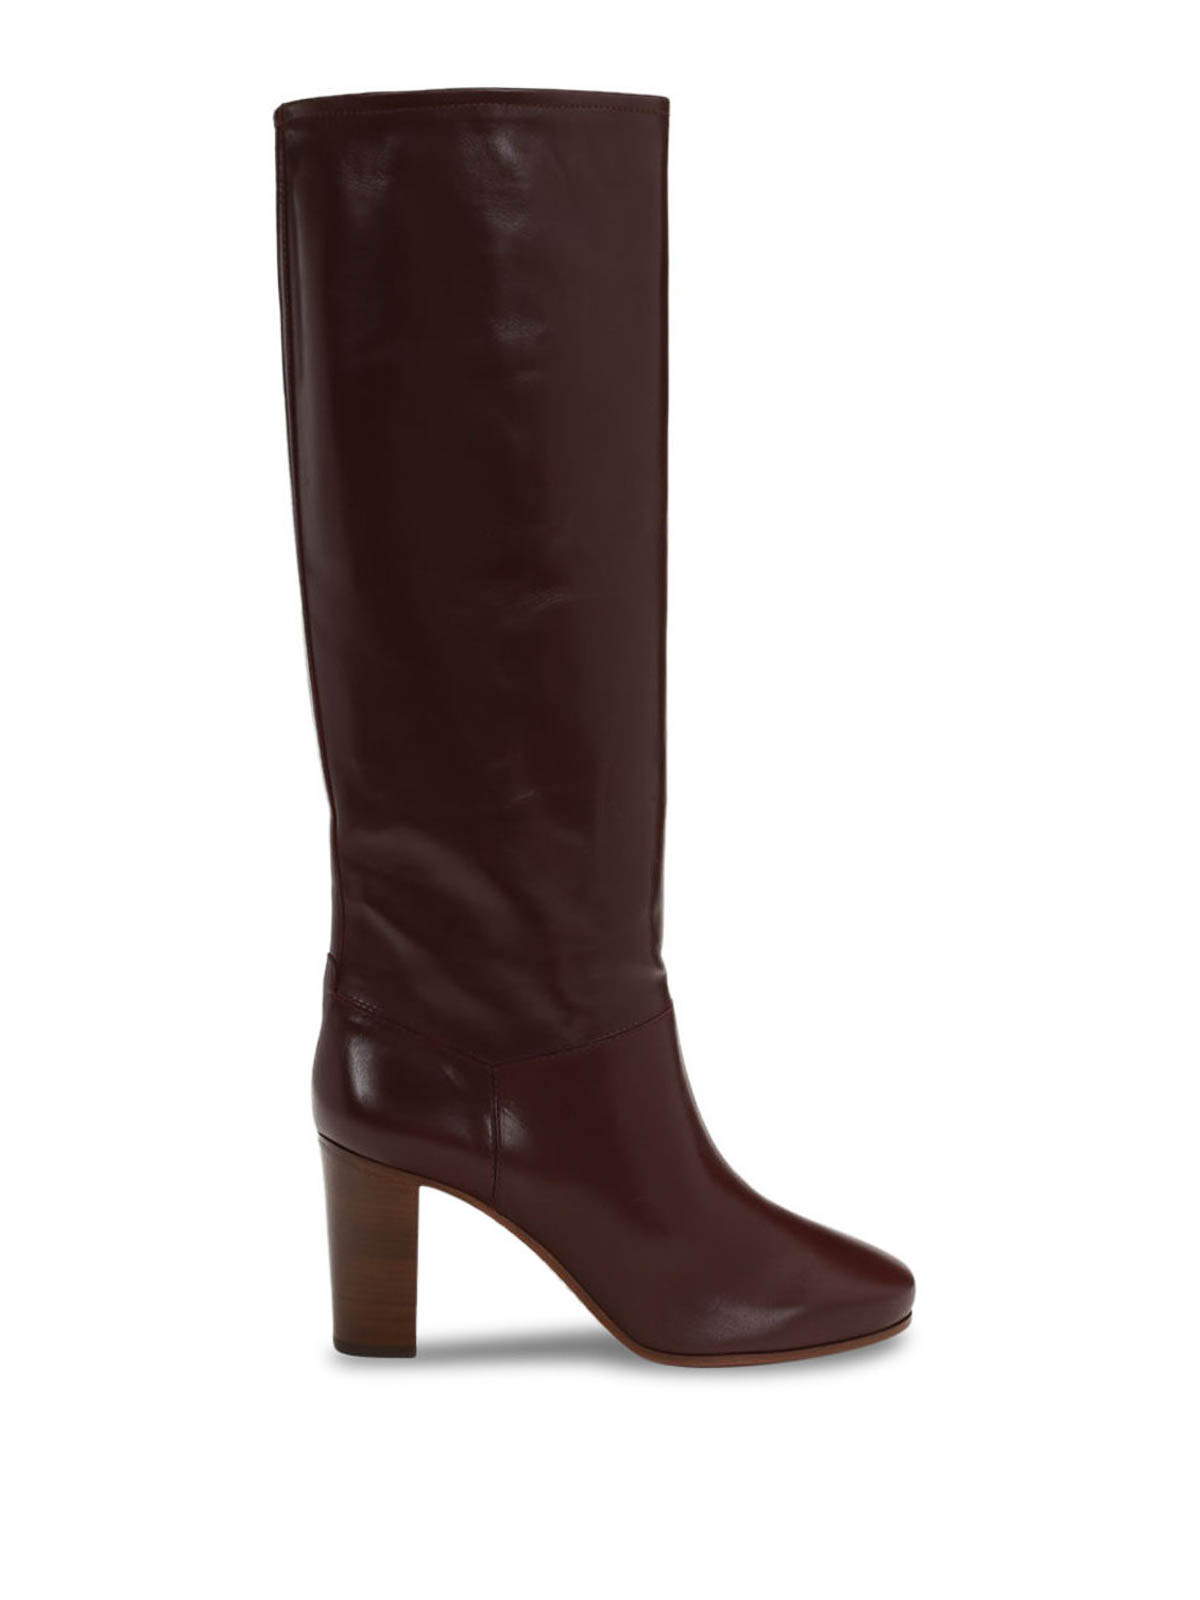 Céline Leather Boots lU1H8sq